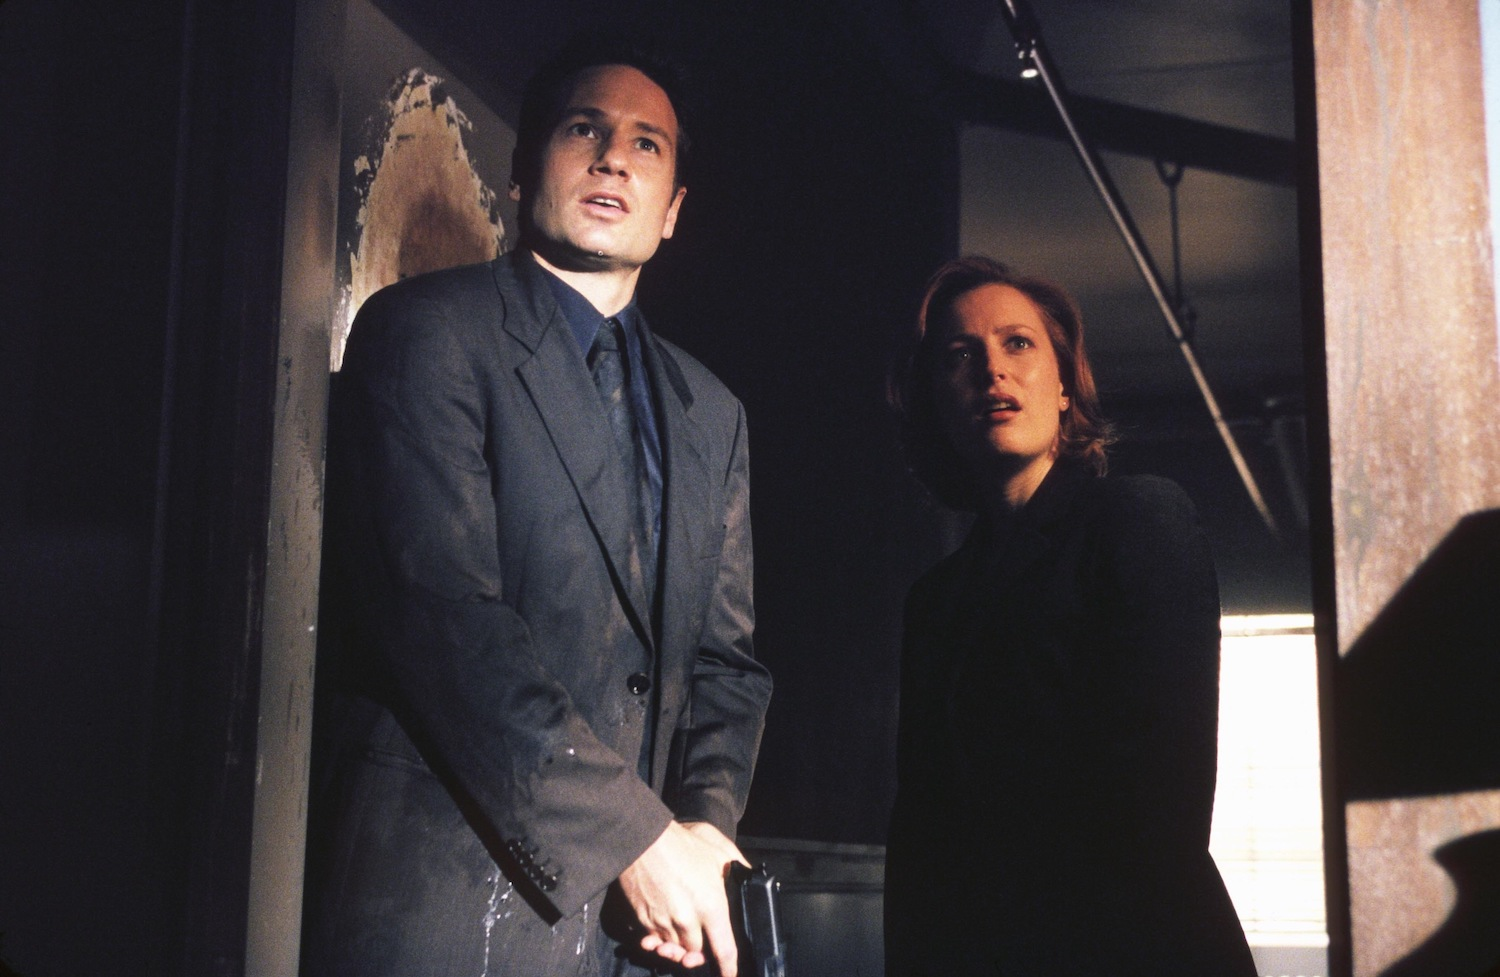 Agent Fox Mulder (David Duchovny) and Agent Dana Scully (Gillian Anderson) on 'The X-Files'